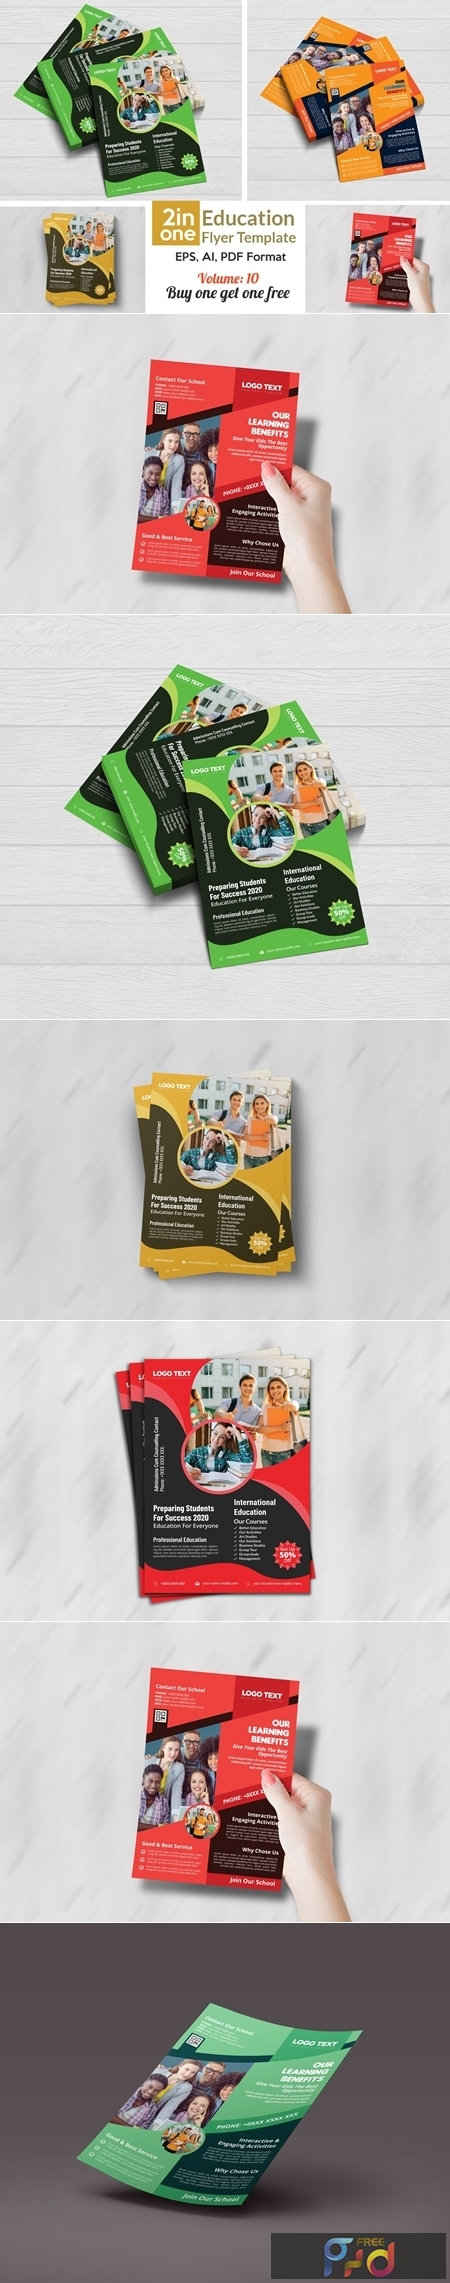 Admission Flyer Templates 4408346 1